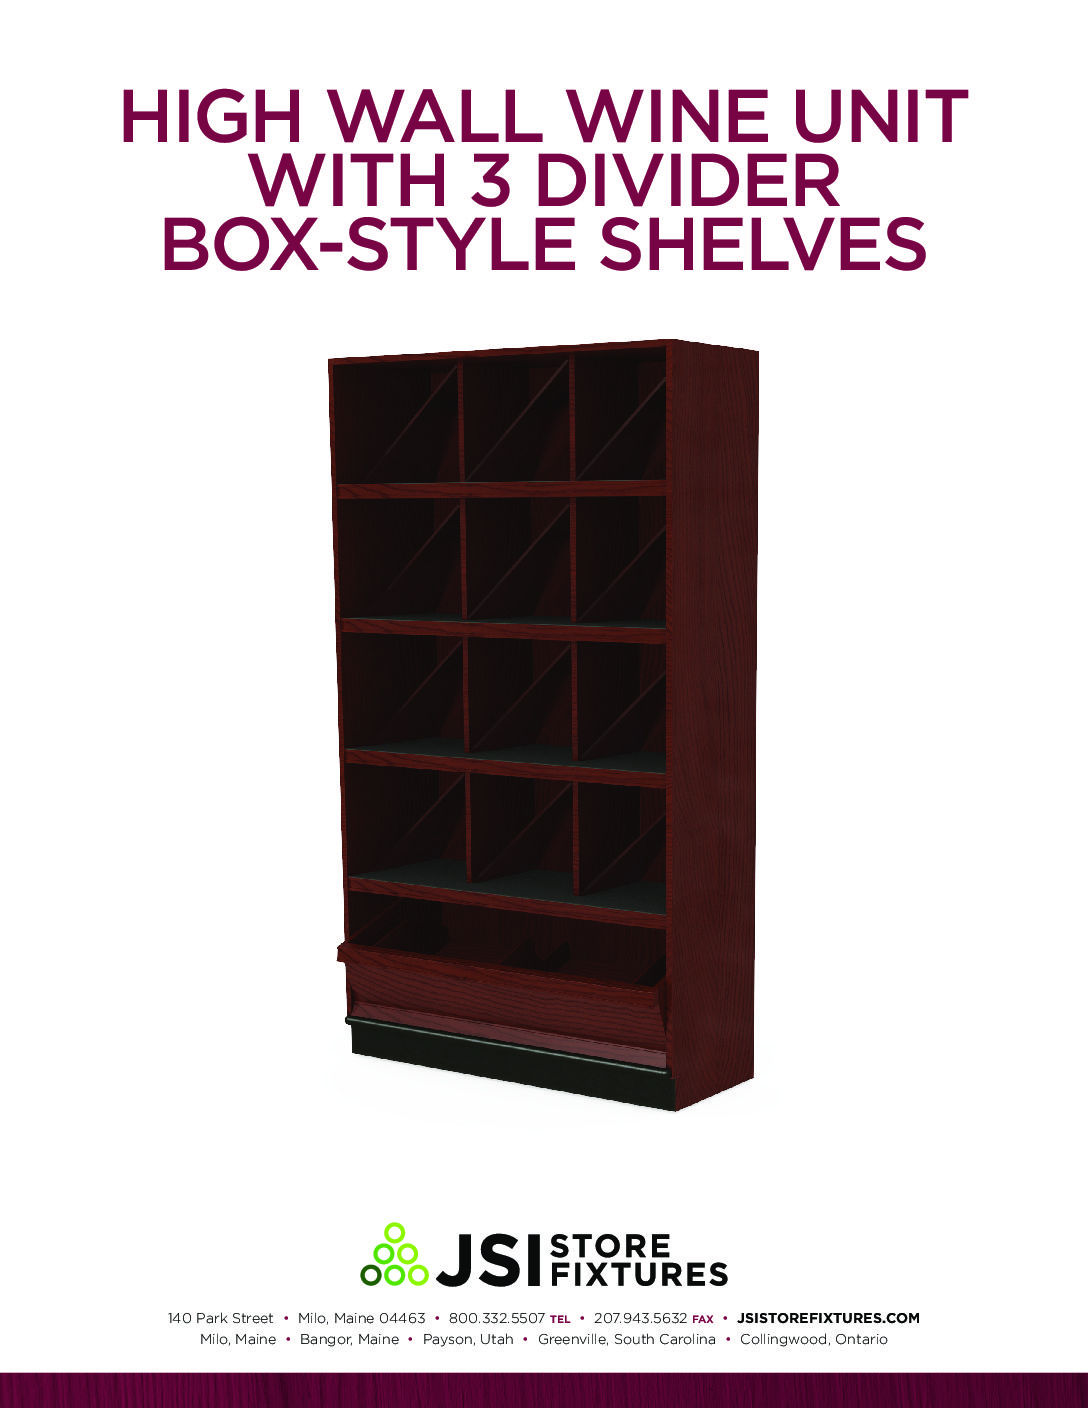 High Wall Wine Unit with 3 Divider Box-Style Shelves Spec Sheet